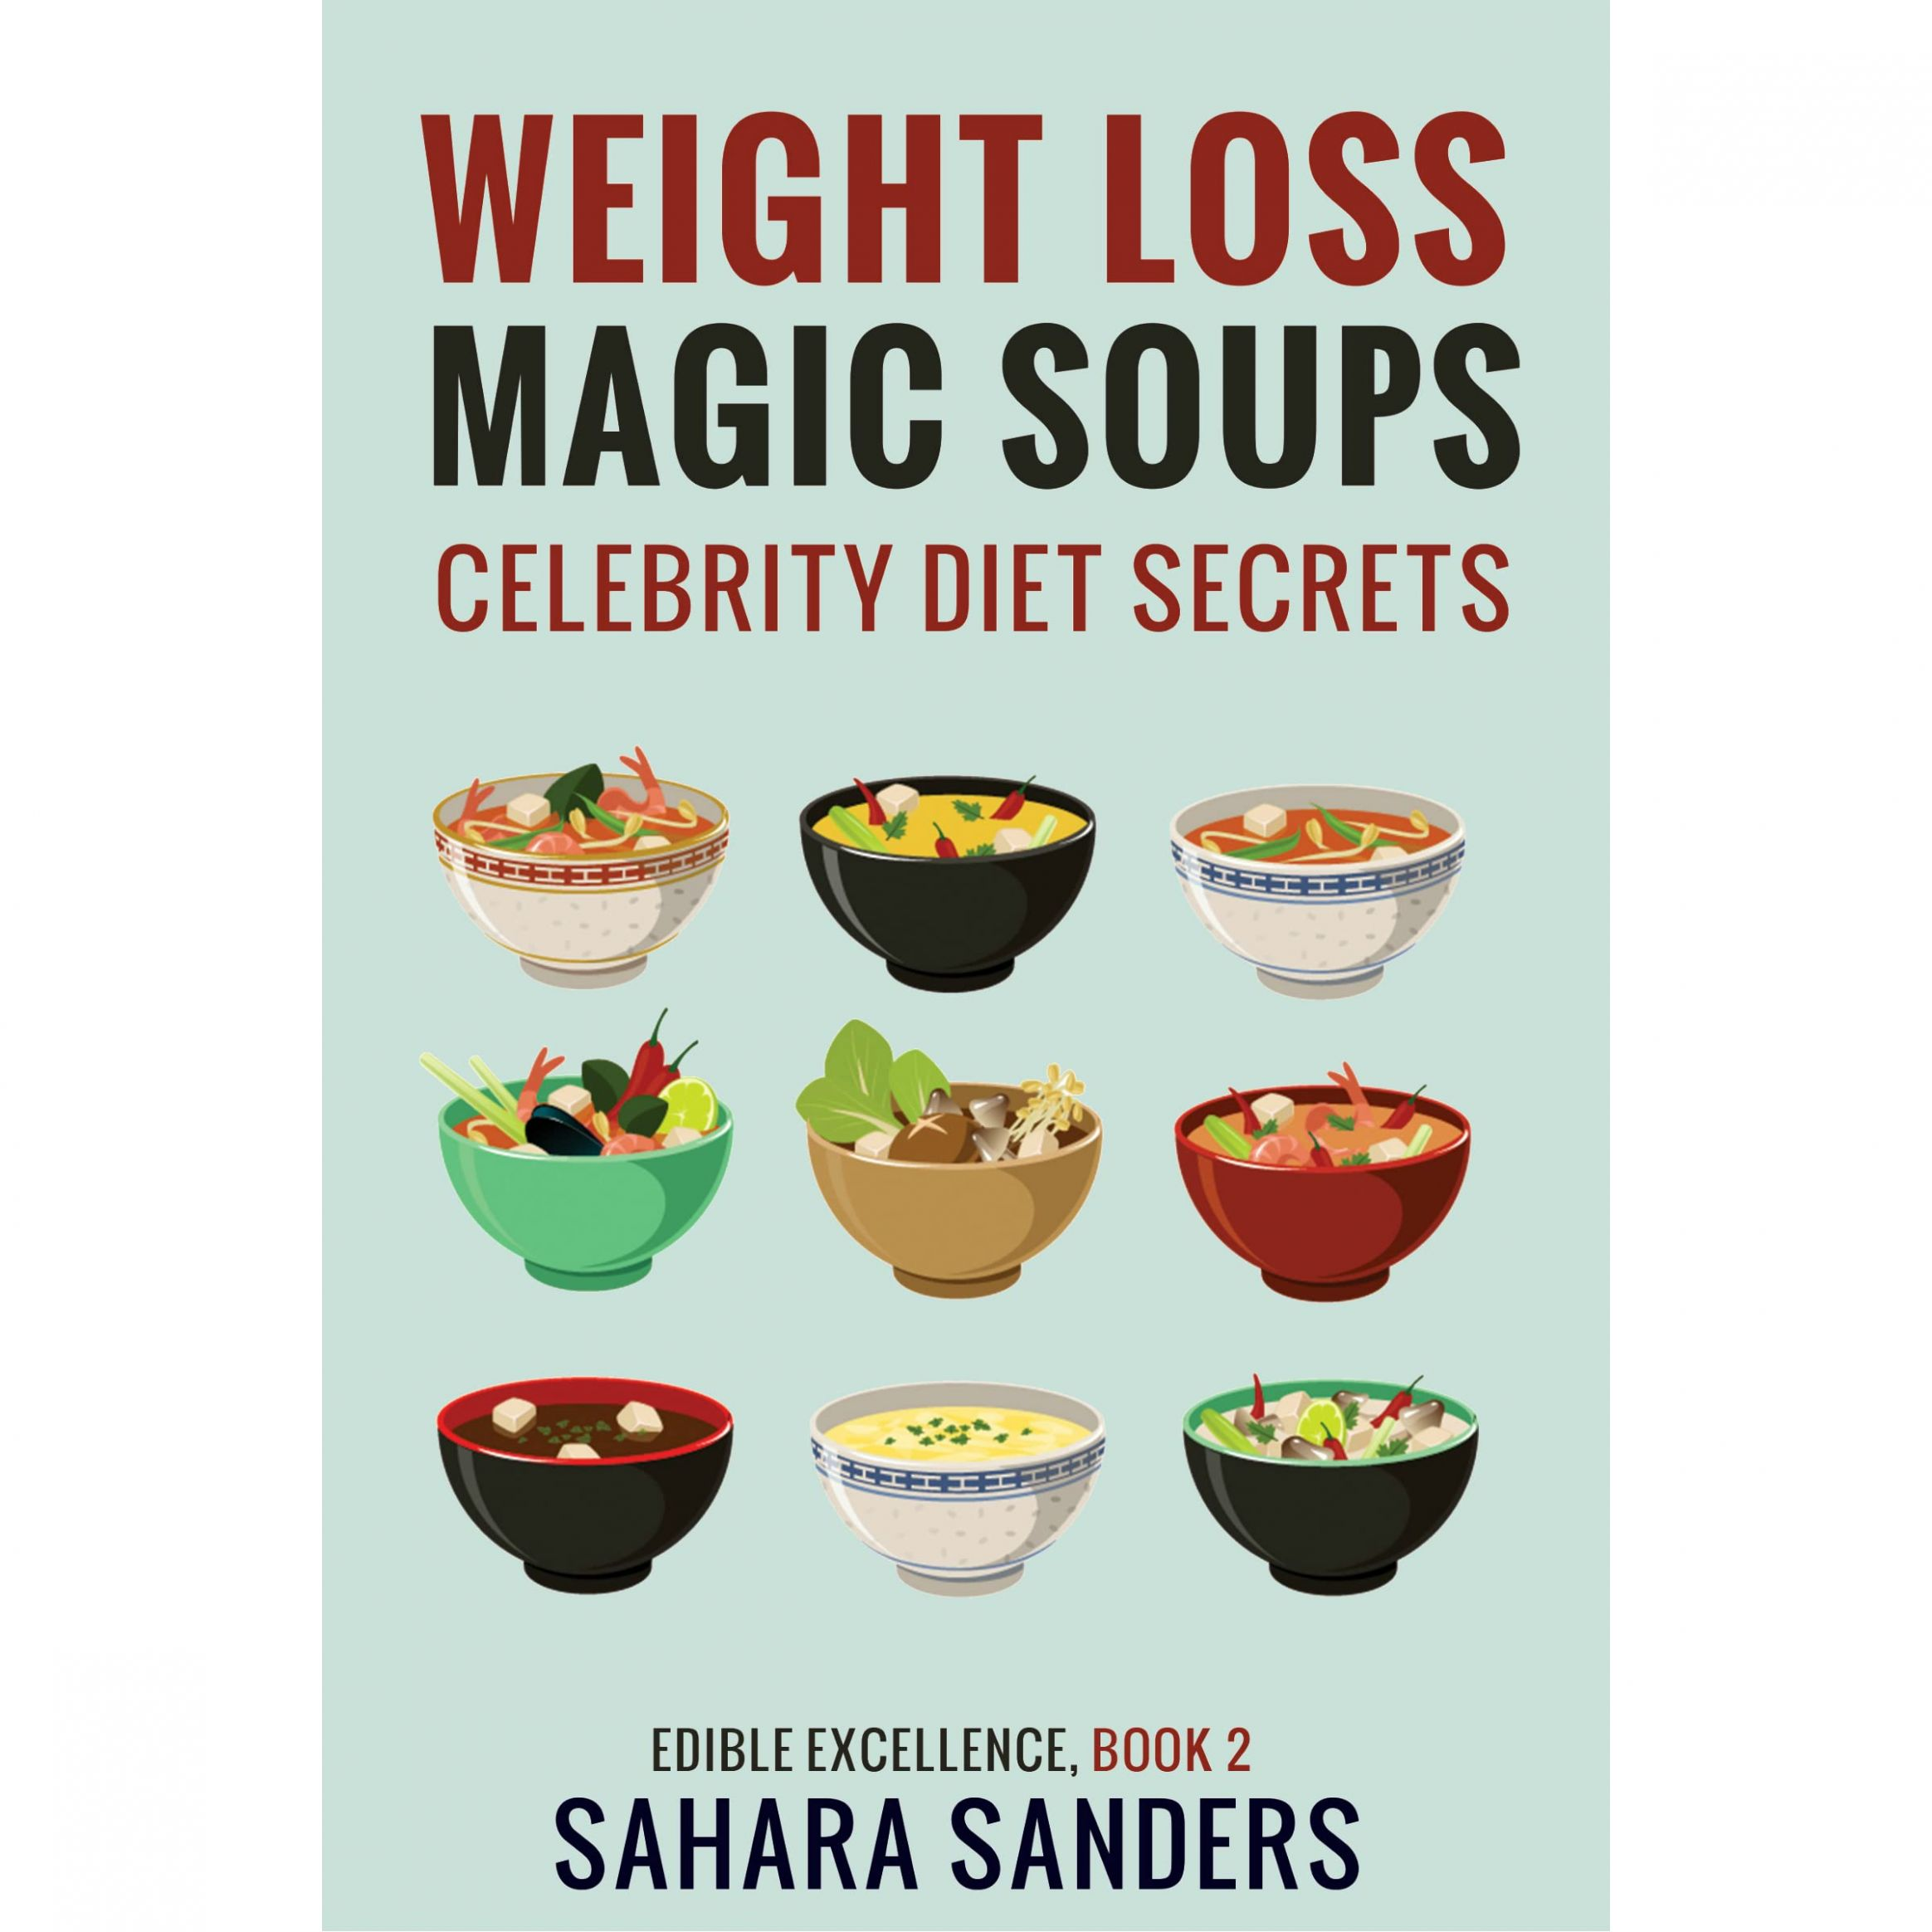 Weight Loss Magic Soups: Celebrity Diet Secrets by Sahara Sanders - Recipe For Weight Loss Magic Soup